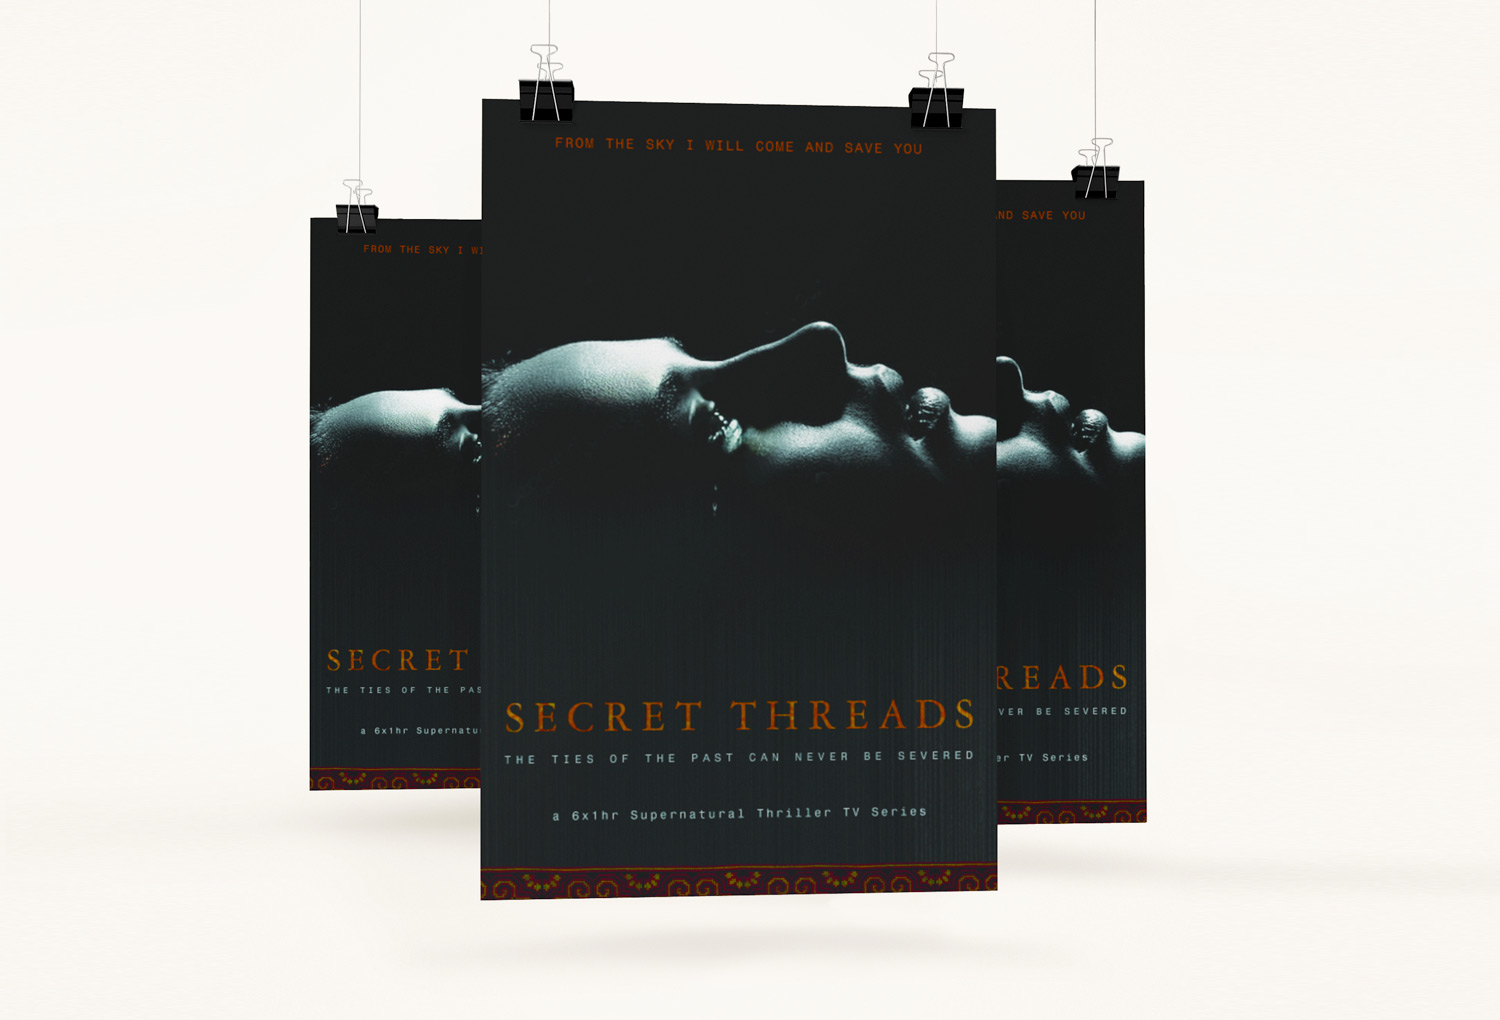 Secret Threads One-Sheet Film Pitch Document Cover By Mango Tree Media